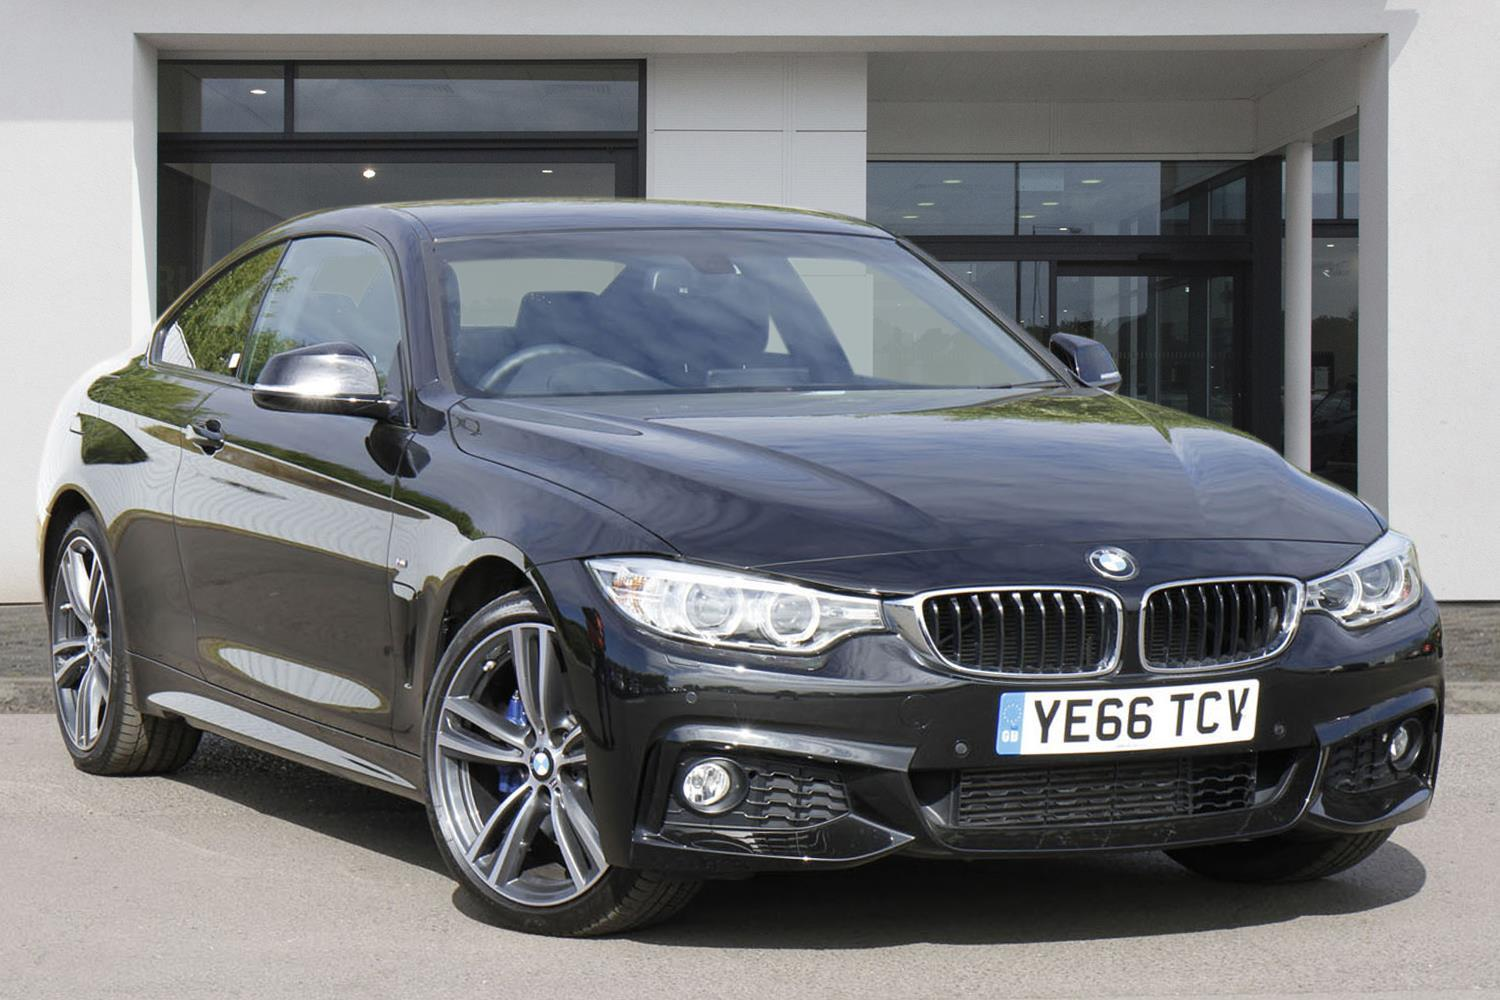 BMW 4 Series Coupé YE66TCV - Image 1